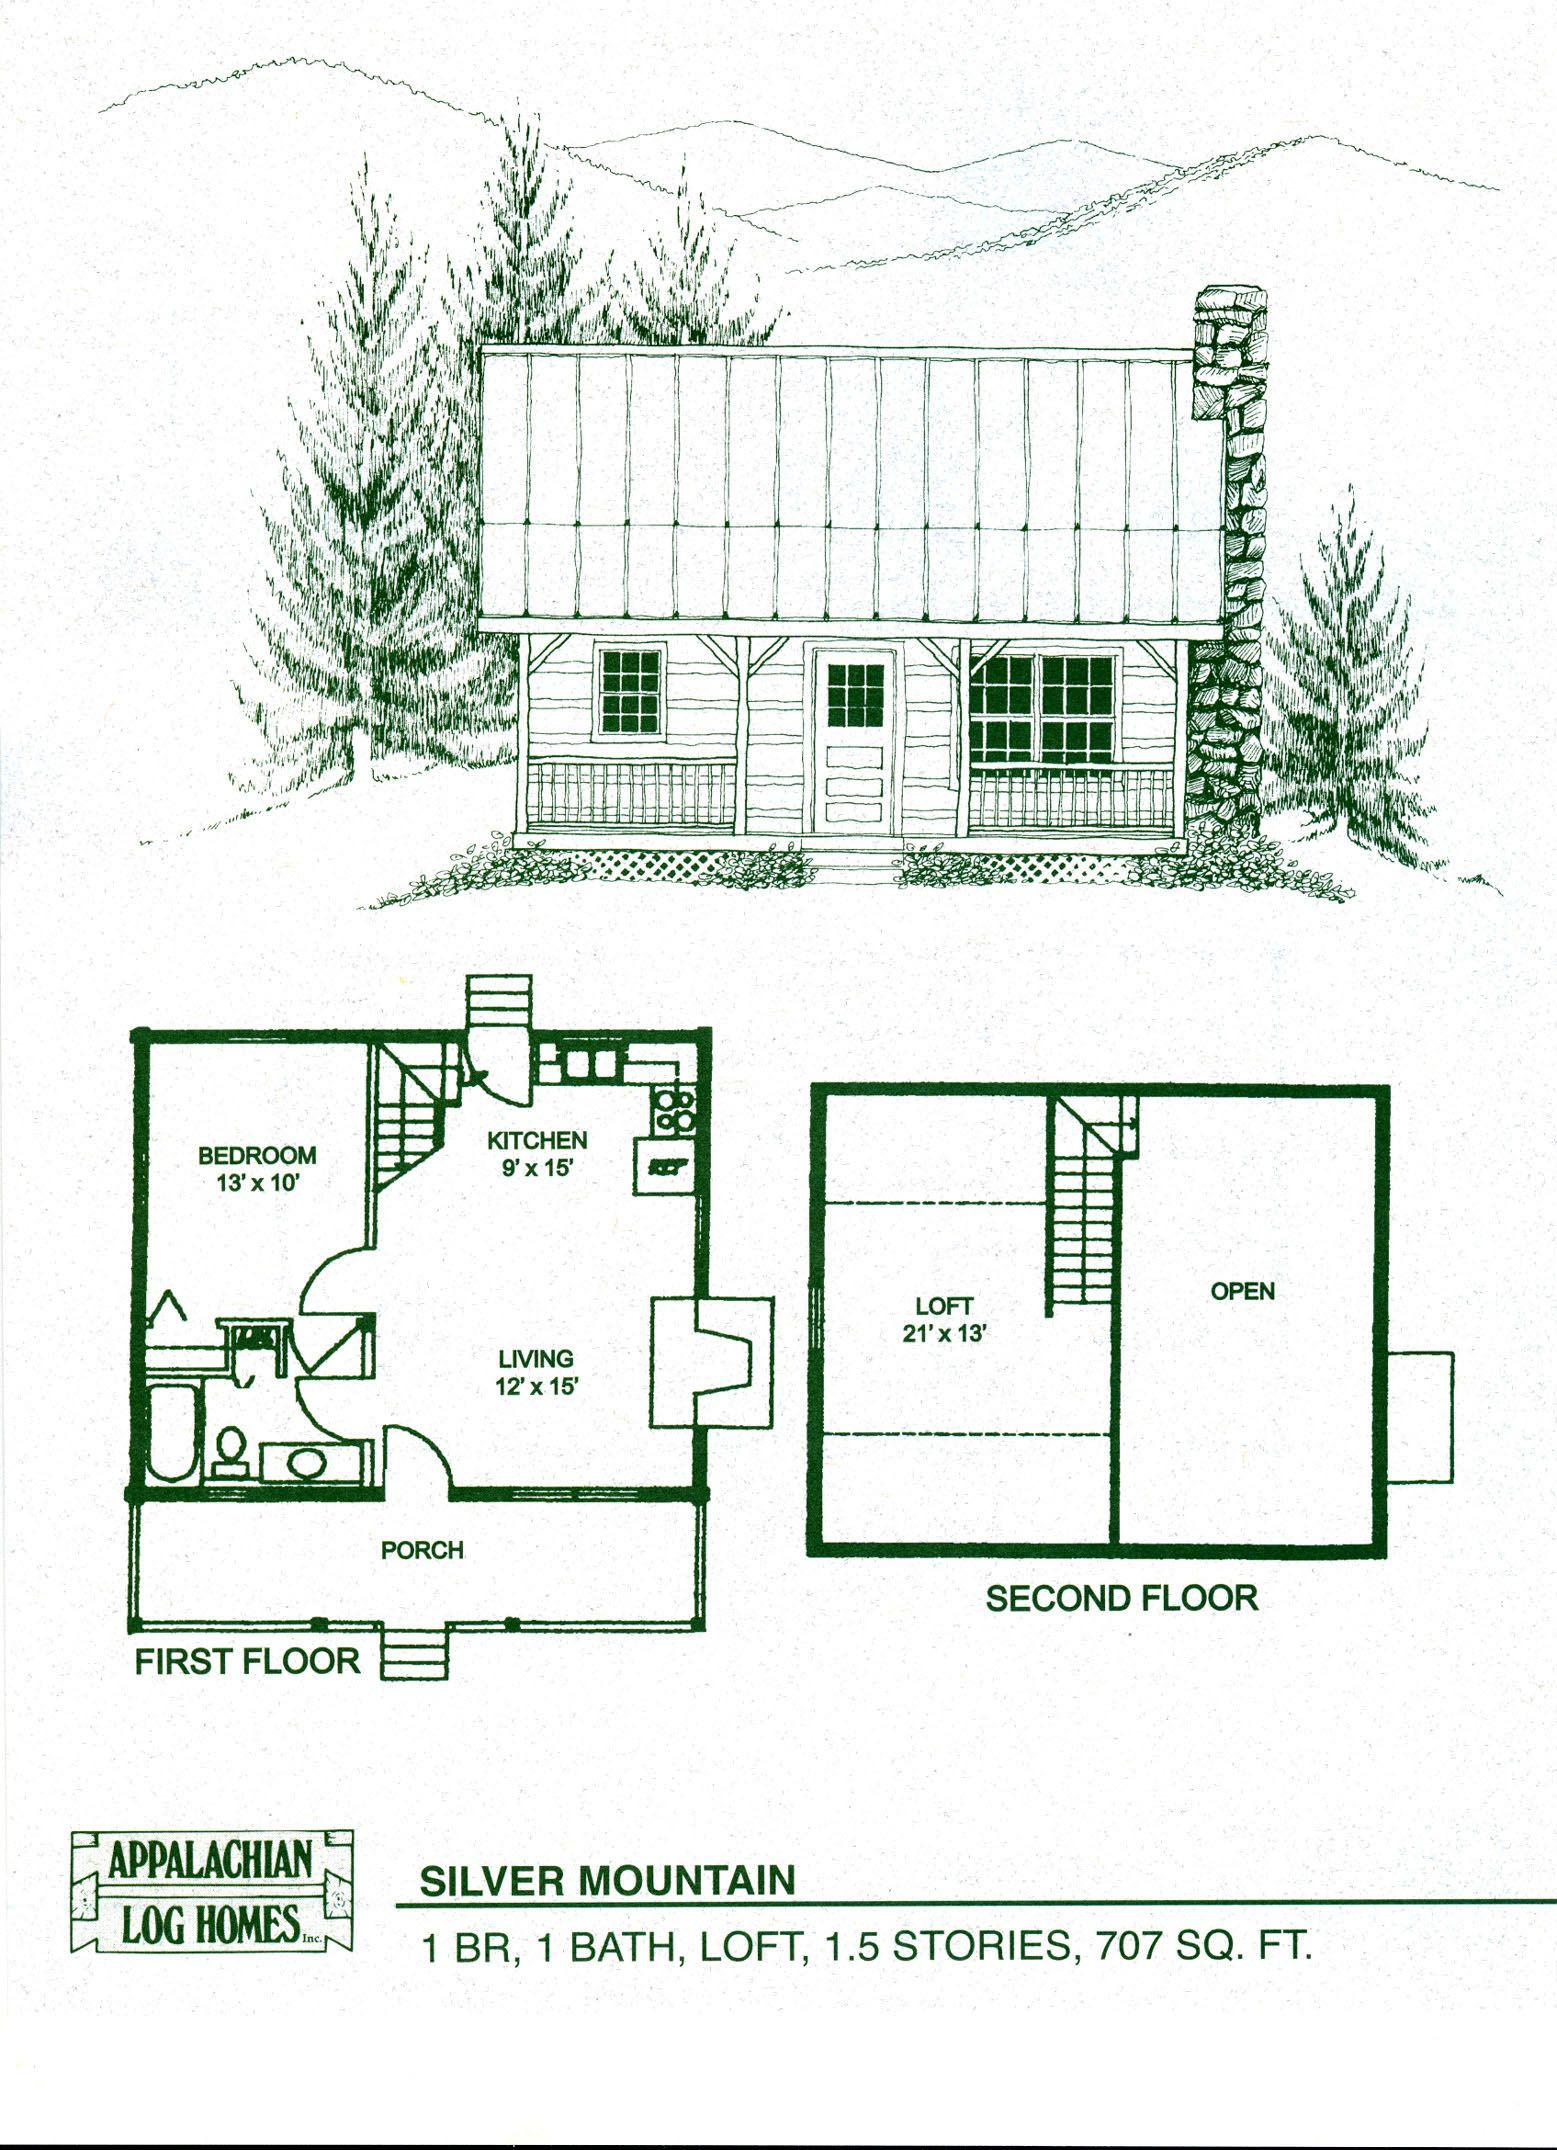 House Plans with Lofts Elegant Small Cabin with Loft Floorplans